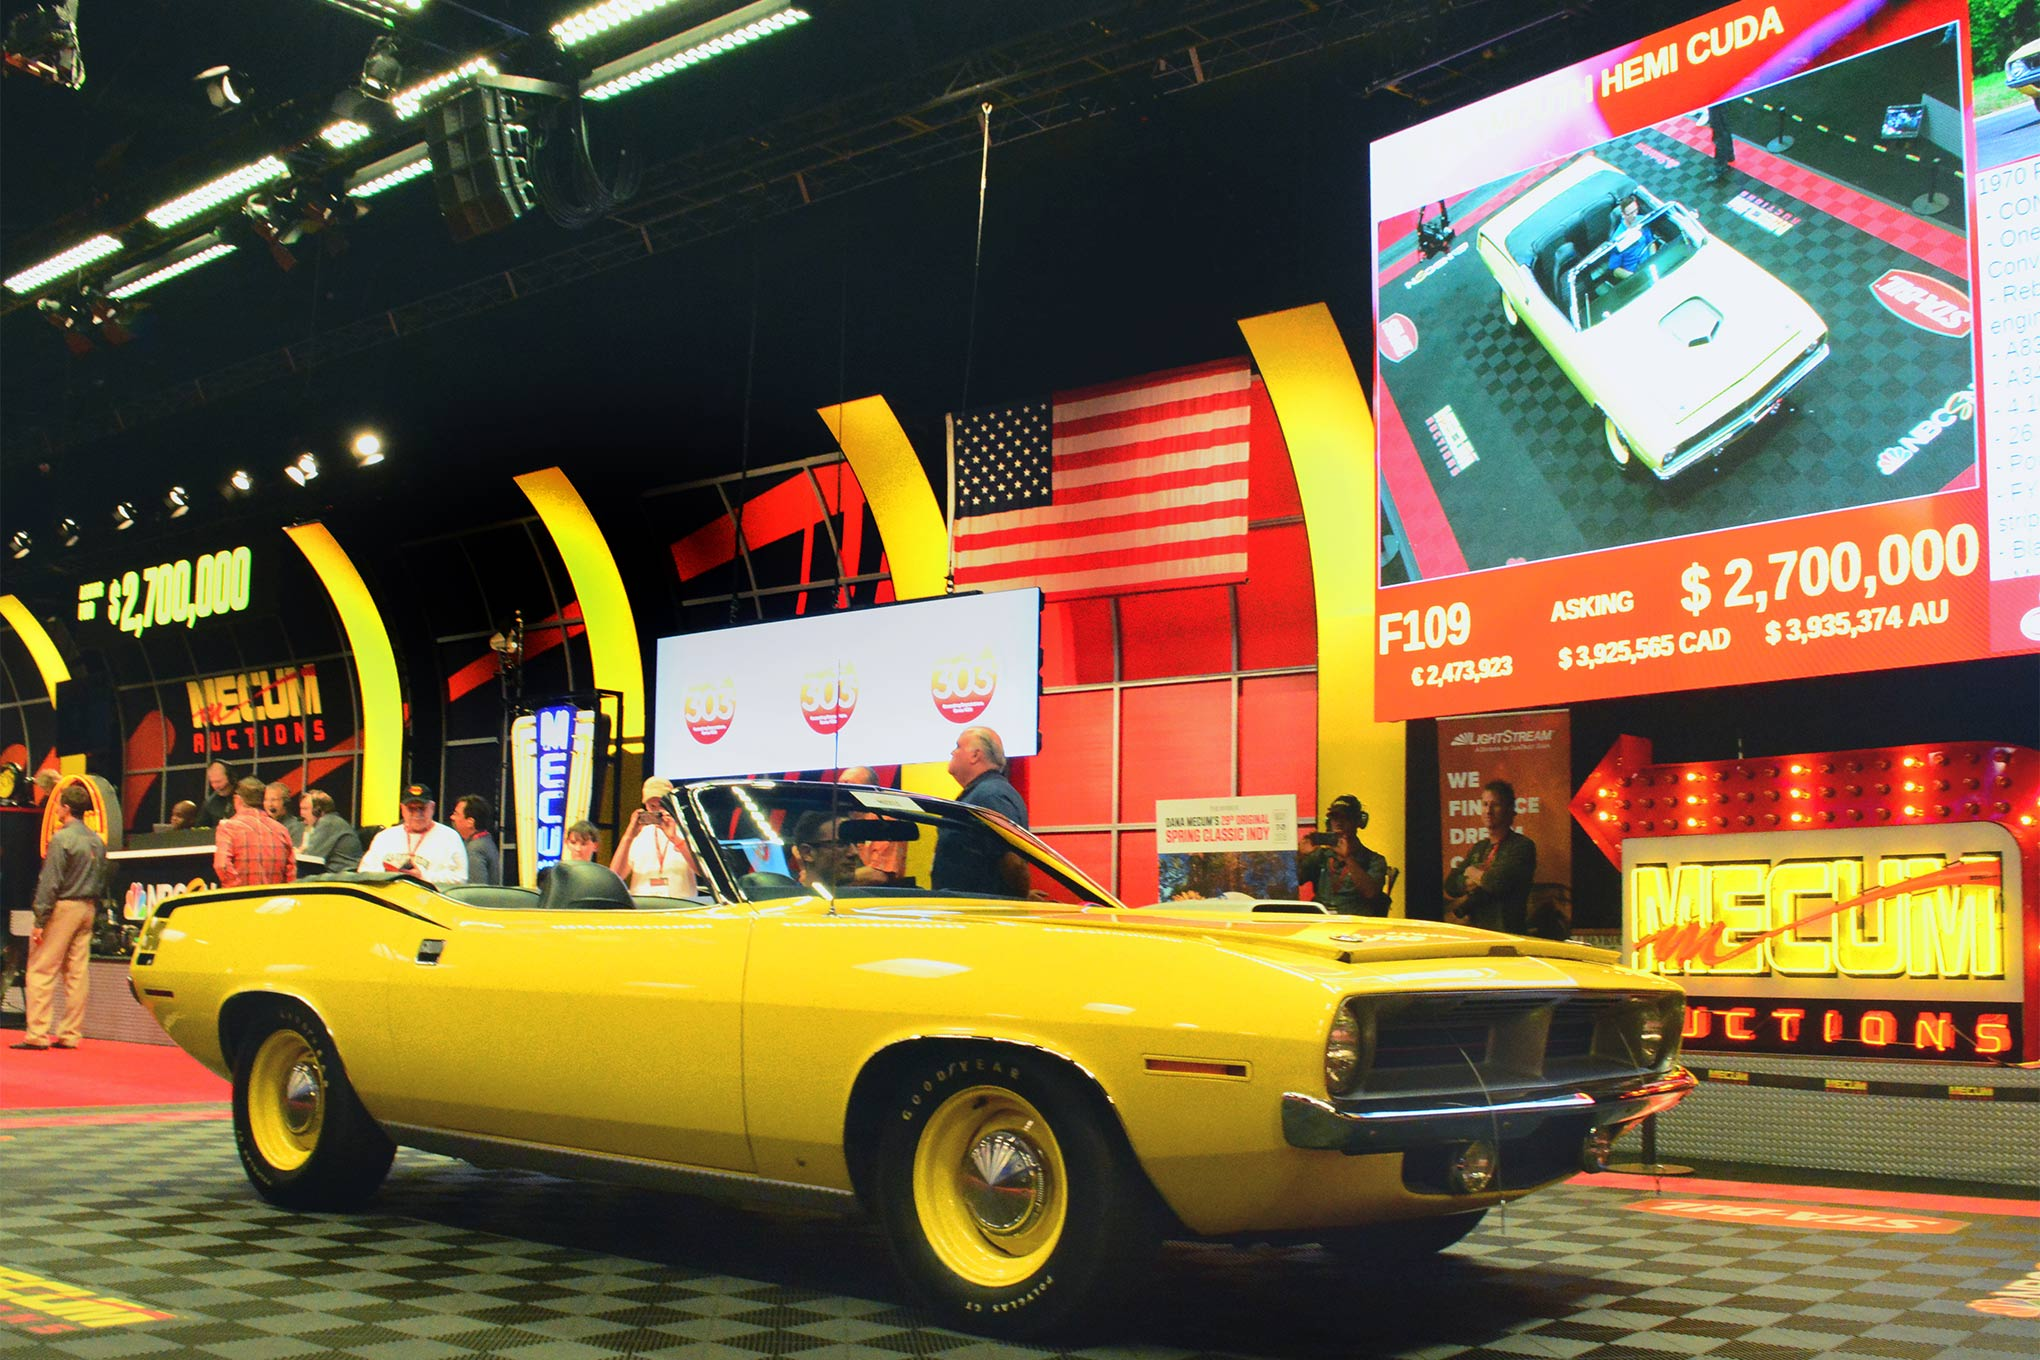 After spirited bidding, this is where lot F109 ended up, an asking price of $2.7 million that set a record for 1970 E-body convertibles.